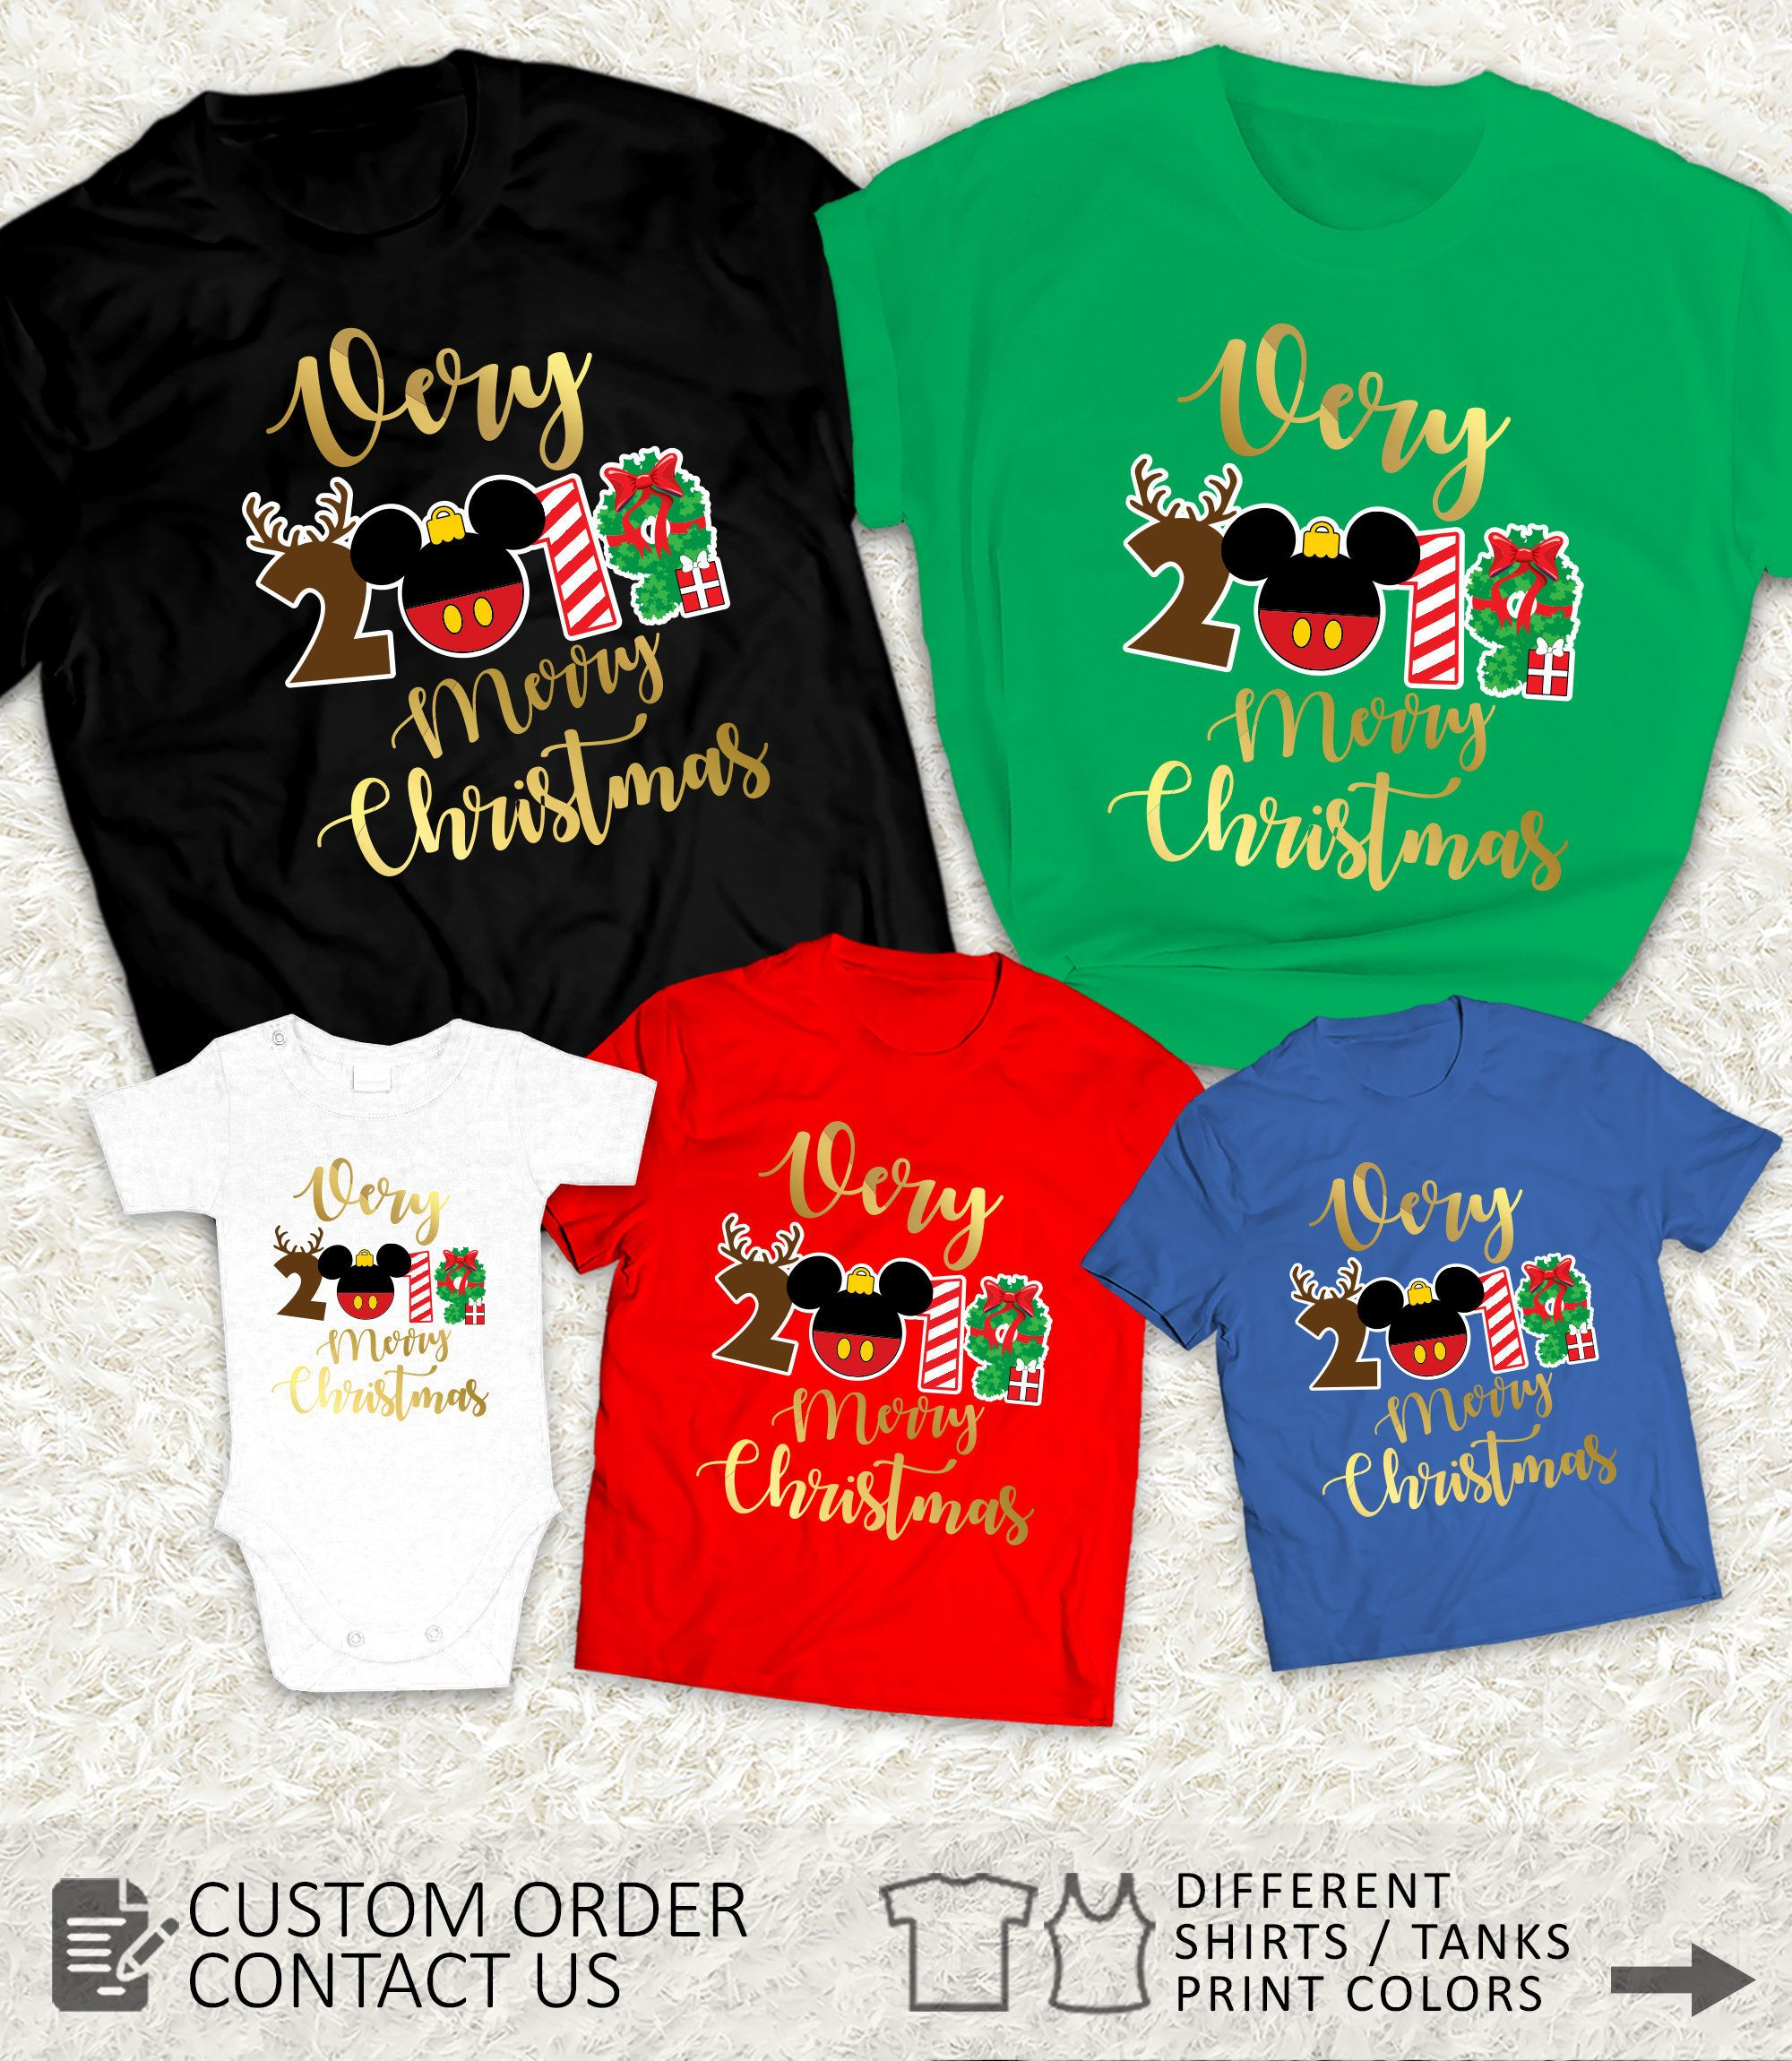 Mickeys Very Merry Christmas Party 2020 Shirt Pin on disney christmas shirts for family, couples, men and women